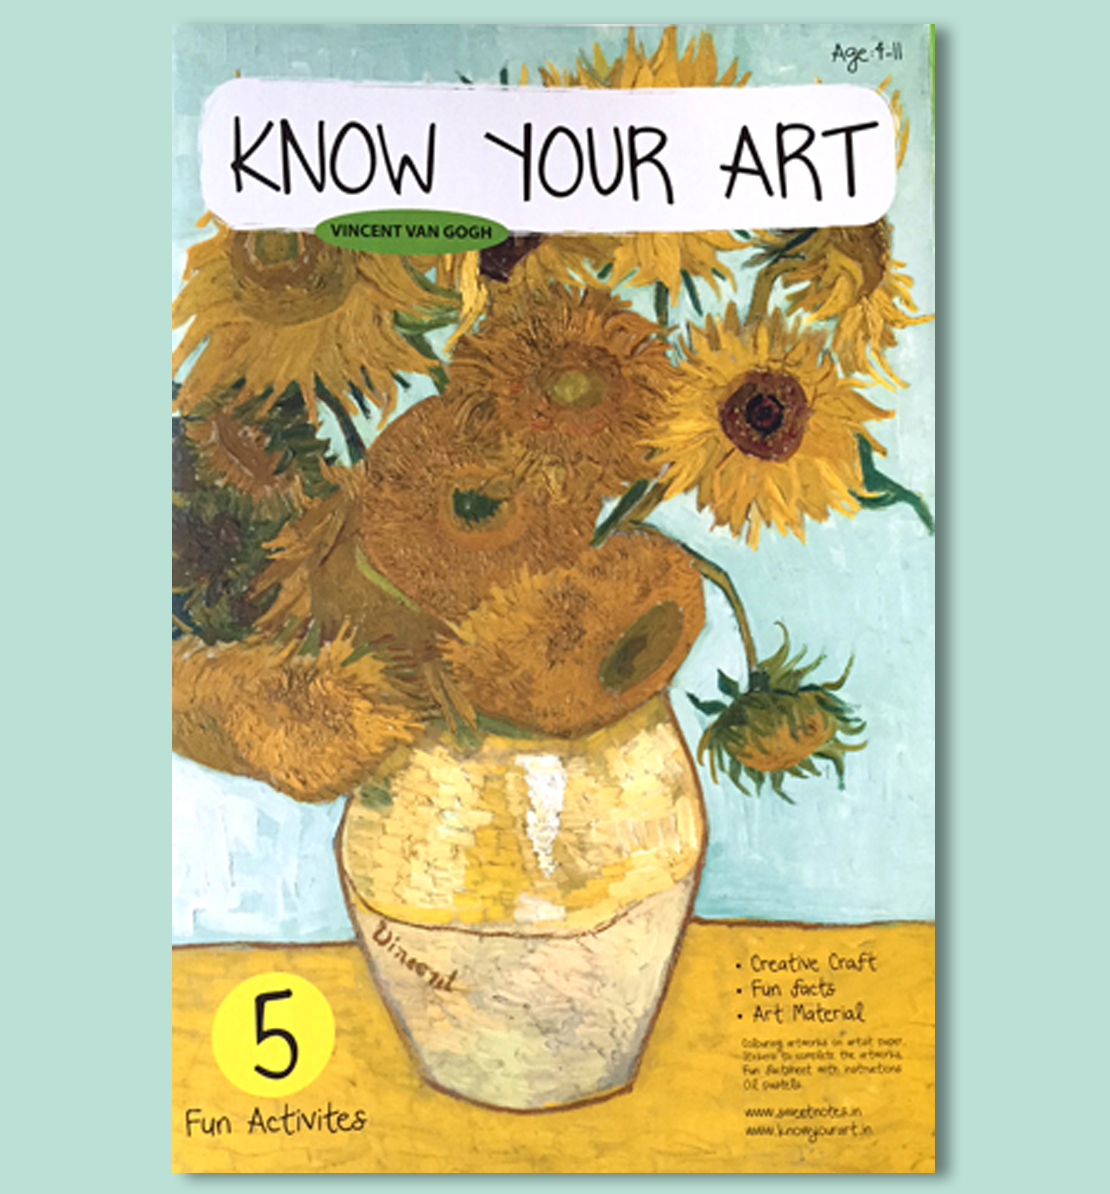 Know Your Art - DIY Kit - Vincent Van Gogh